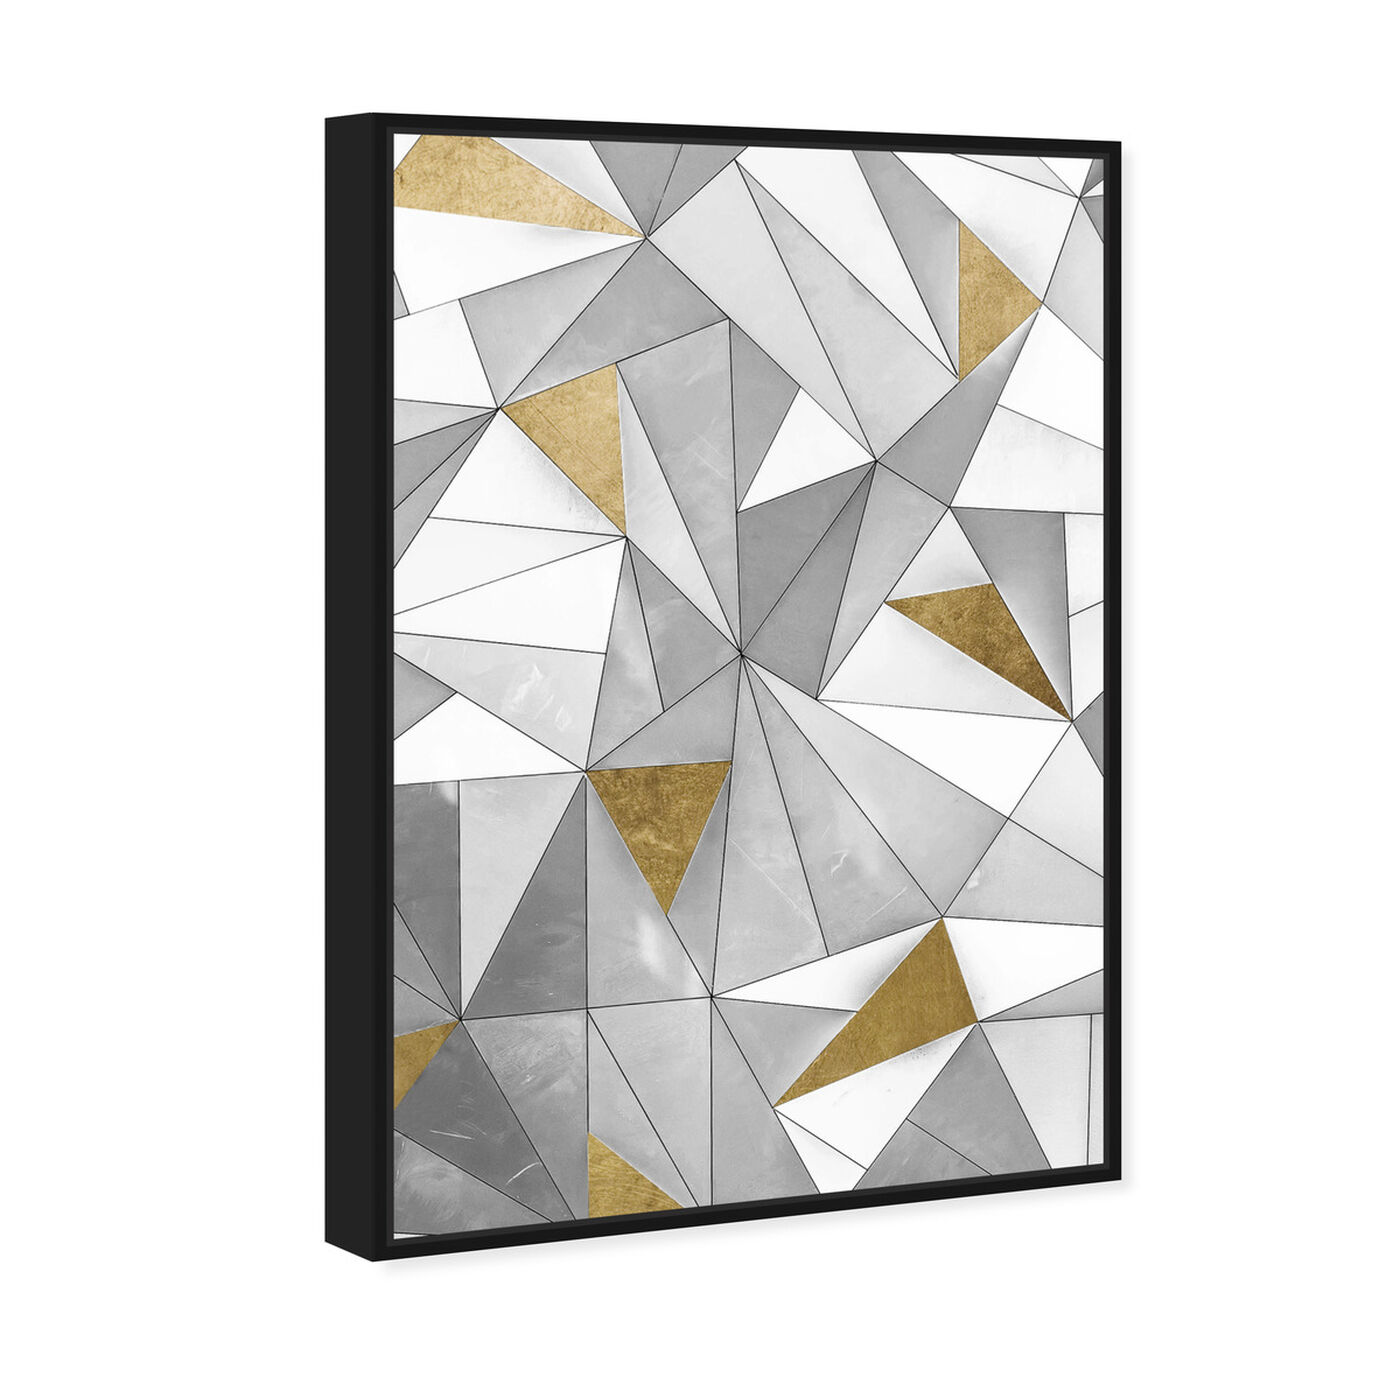 Angled view of Triangular Wall featuring abstract and geometric art.